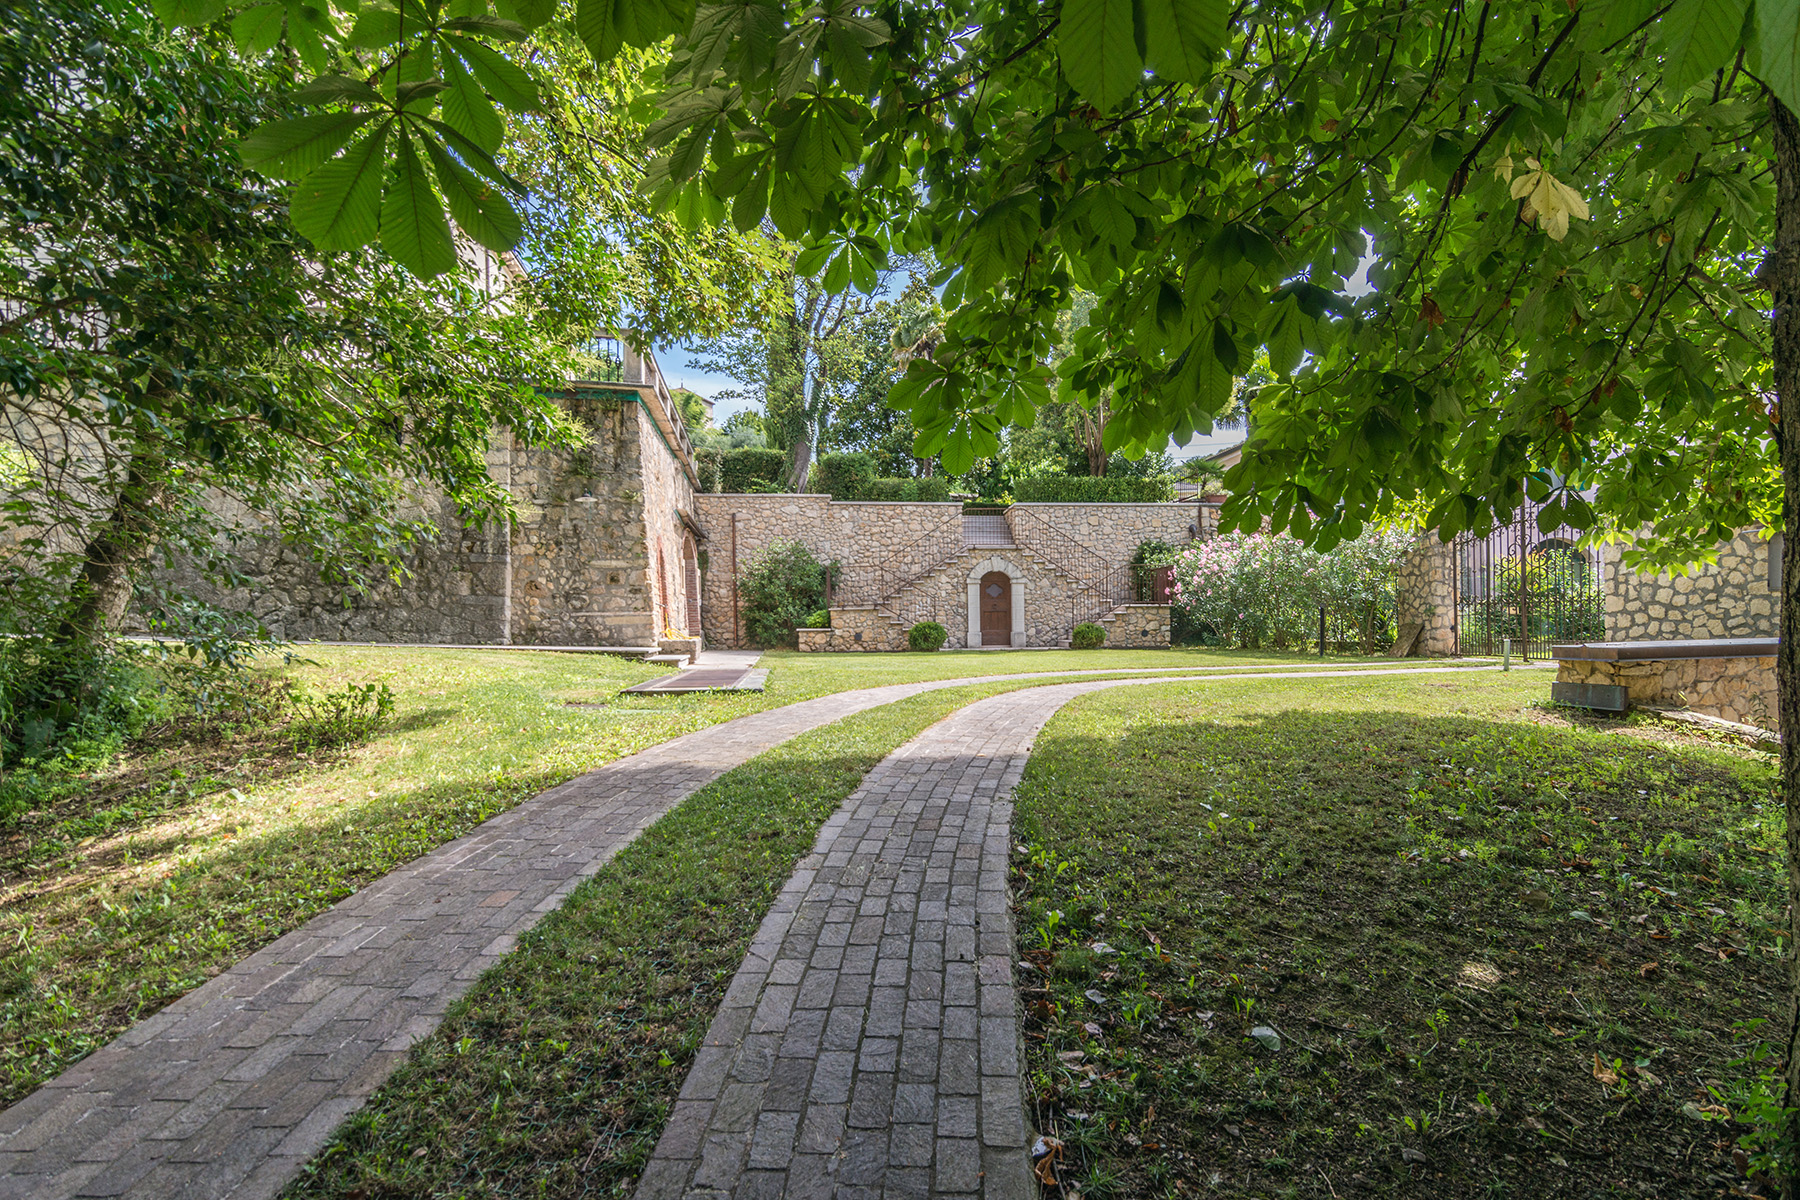 Additional photo for property listing at Antique villa immersed in the Verona hills via Sparavieri Other Verona, Verona 37024 Italia